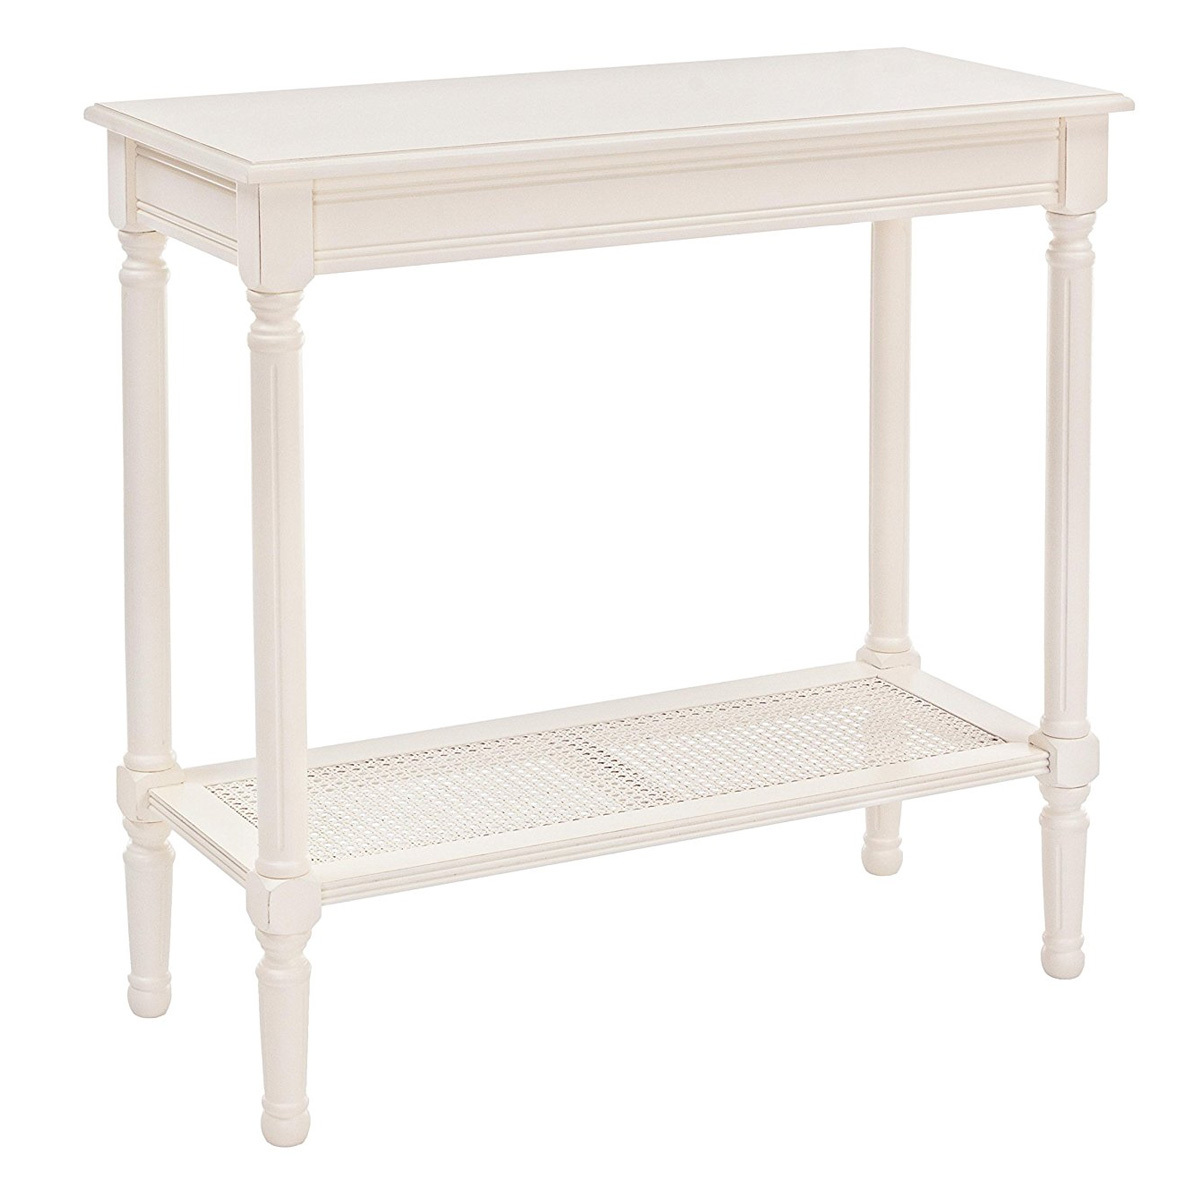 Photos 1: Bizzotto Fixed wood console l. 80 x 35 0745375